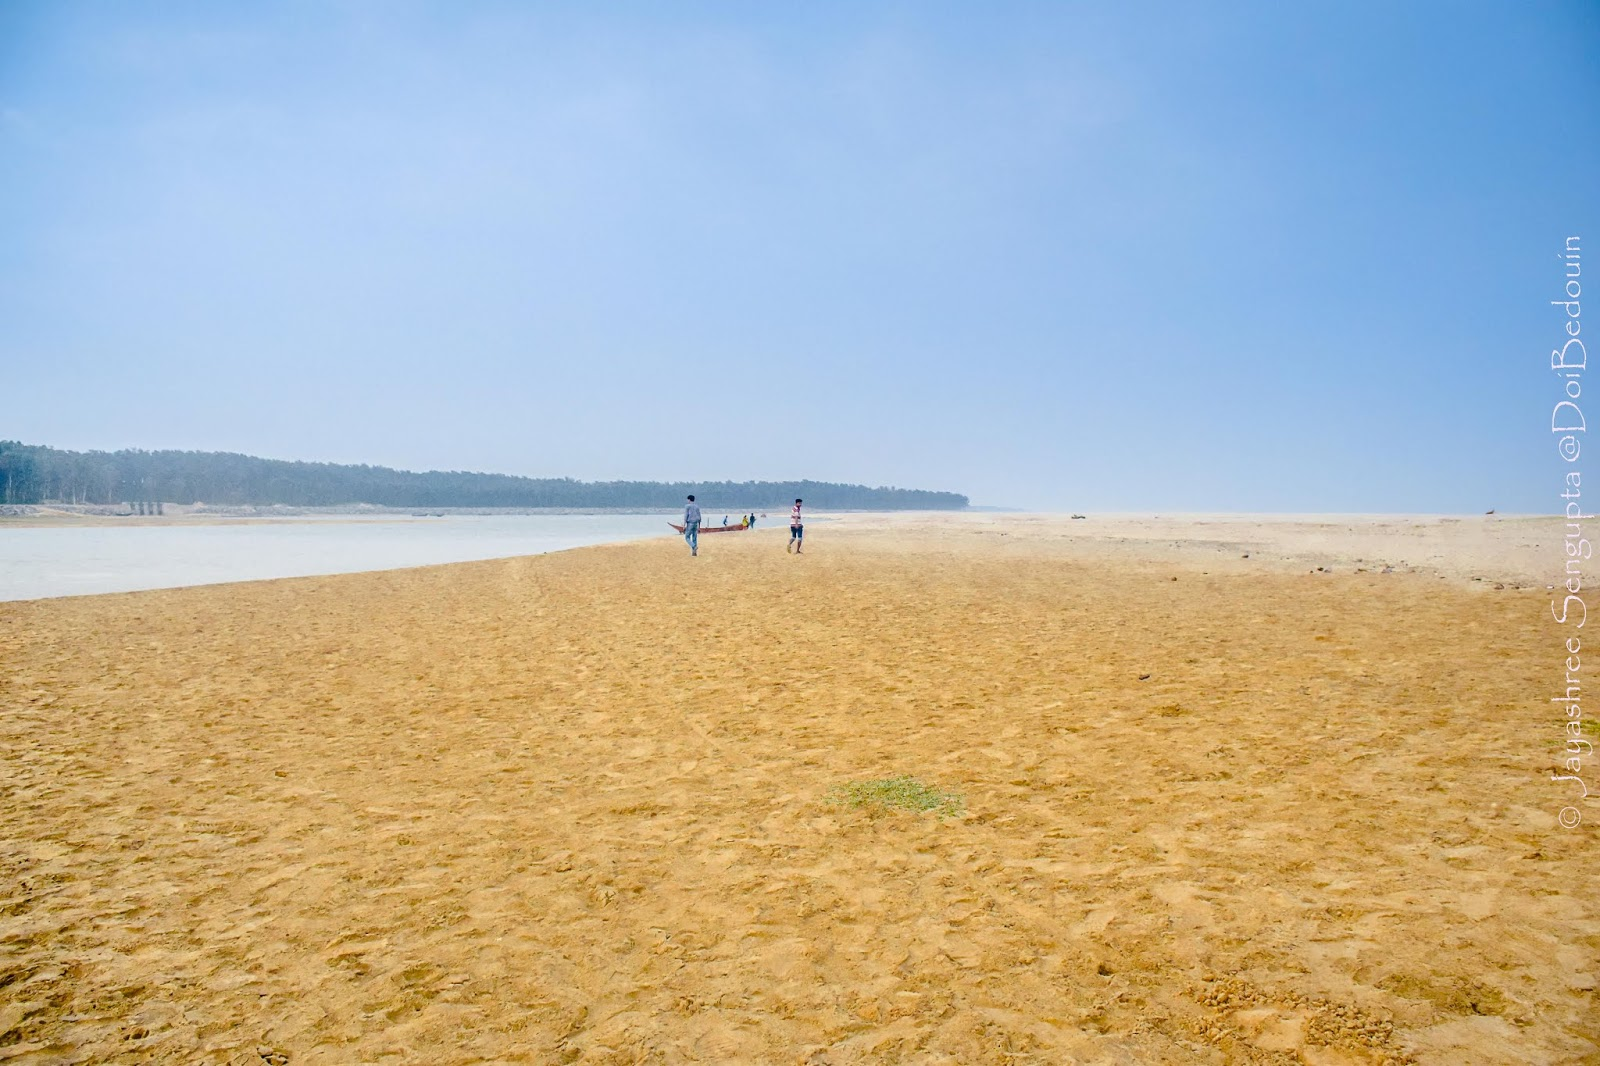 Unwind from the daily blues and jump into the yellow dunes along the beach here at Talsari doibedouin